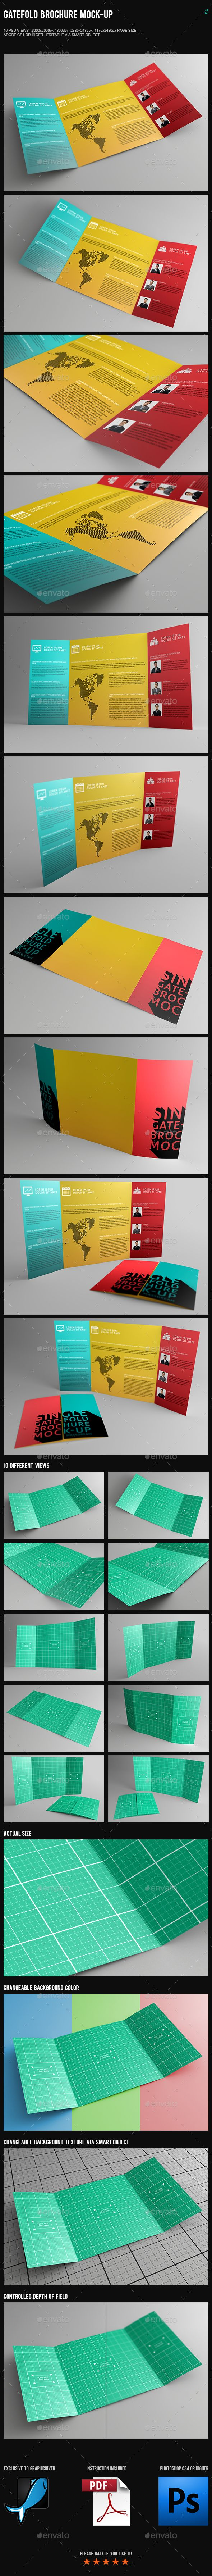 Gatefold Brochure MockUp  Brochures Mockup And Business